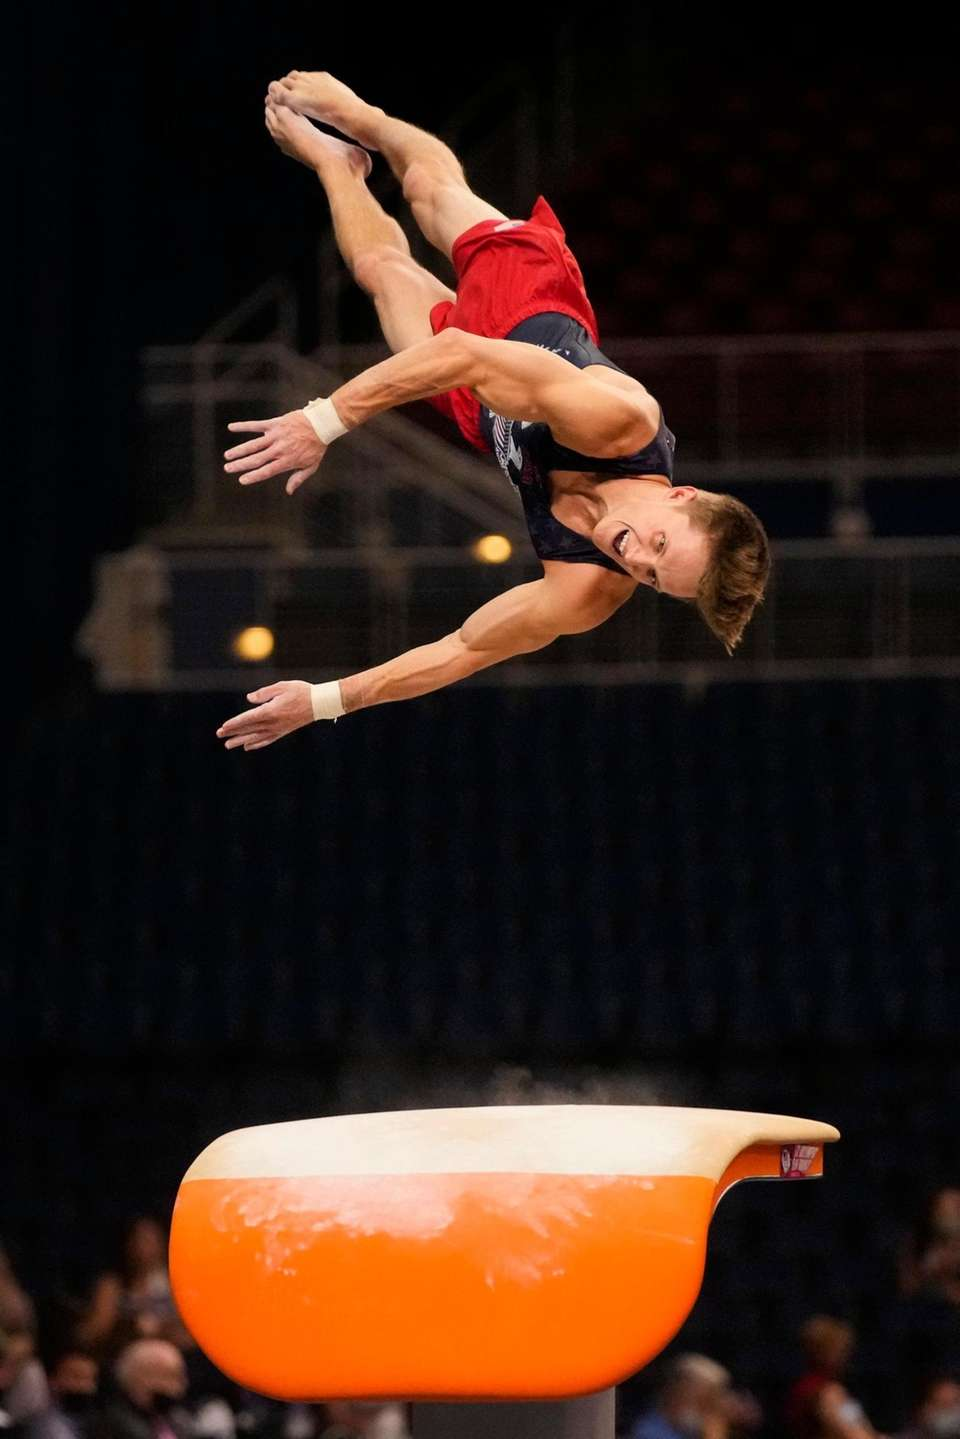 Allan Bower competes on the pommel horse during